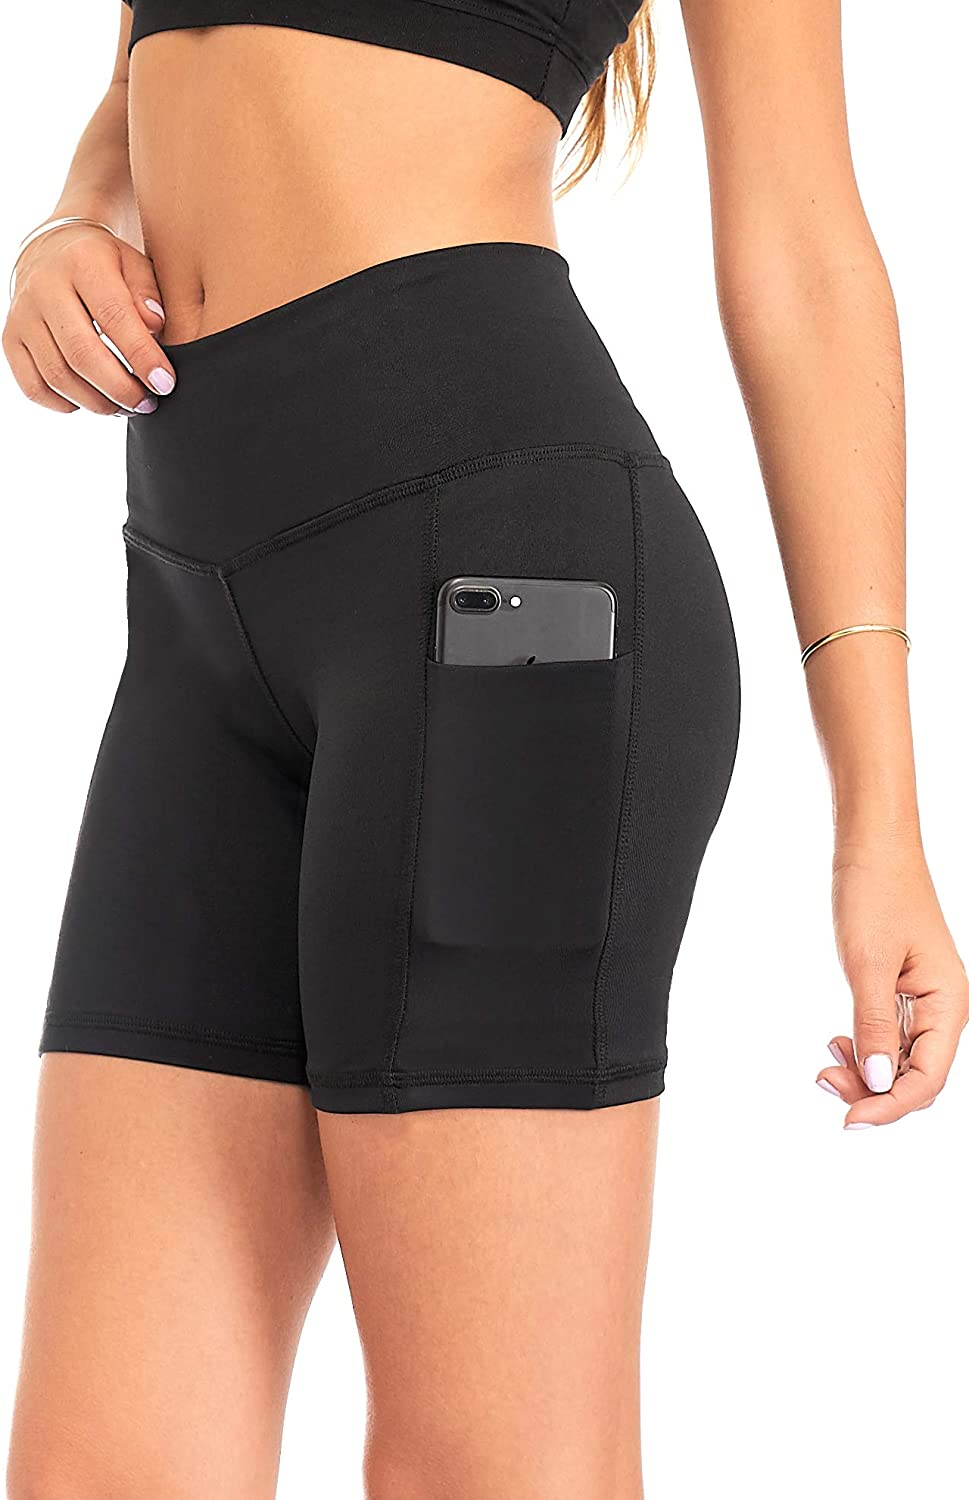 DEAR SPARKLE Yoga Shorts for Women with 2 Pockets - Workout Running High Waist Short - Plus (S15)